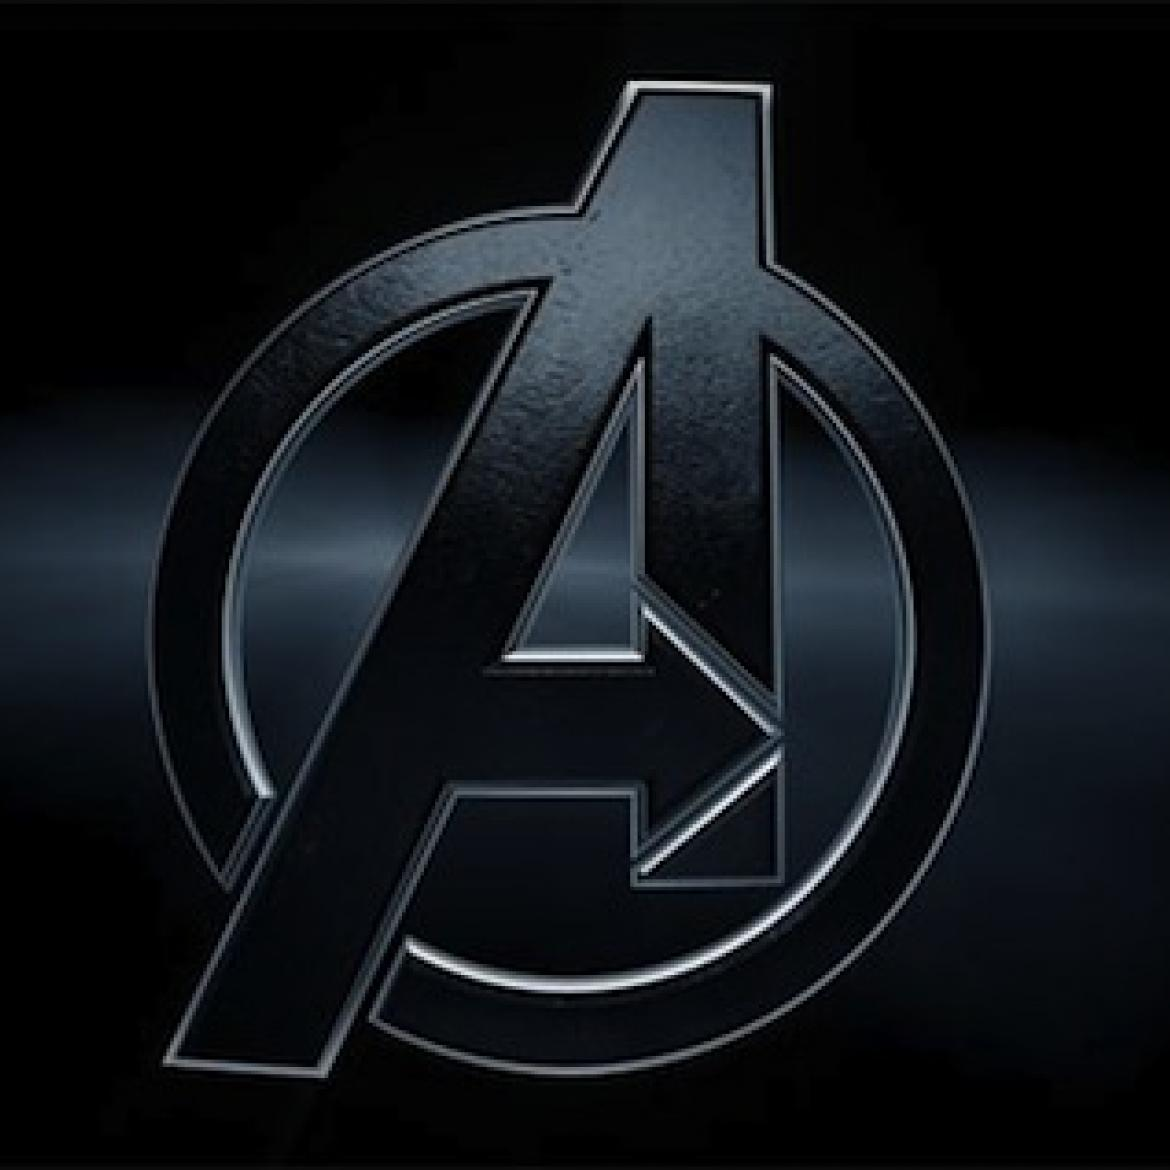 Image - The-avengers-movie-logo.jpg - Marvel Movies Wiki ...